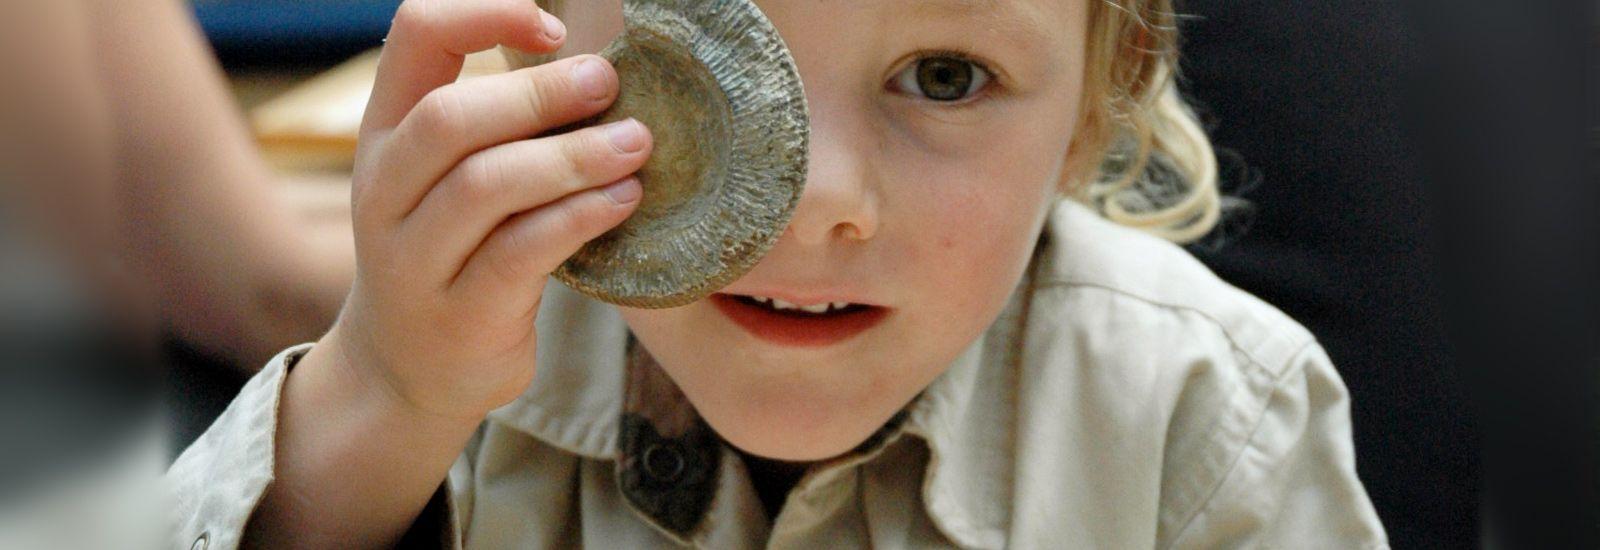 little boy with fossil